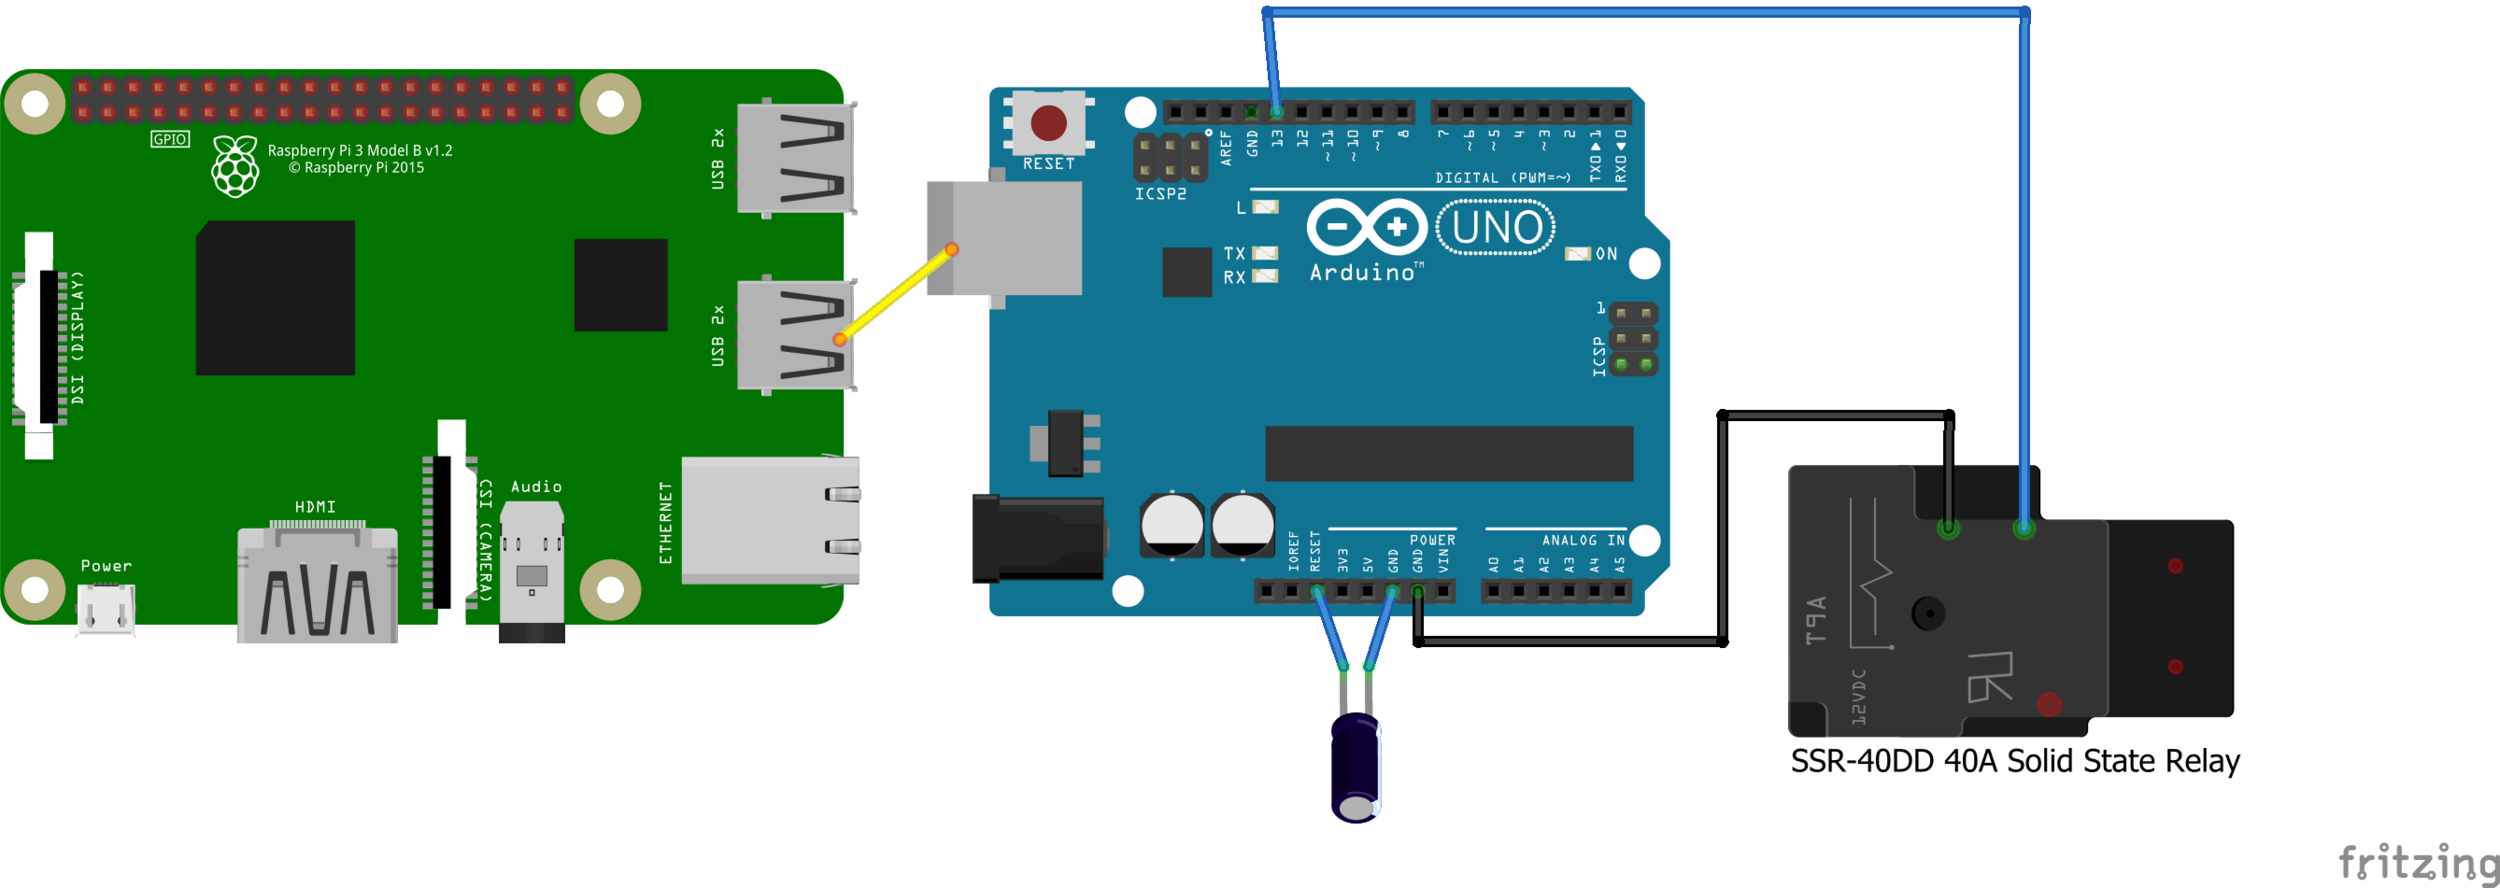 Yellow line signifies the USB connection between the Pi and Arduino. Also note the presence of a 47 micro farad capacitor between the Arduino's reset pin and ground. This is to prevent the Arduino from resetting every time a serial connection is established.